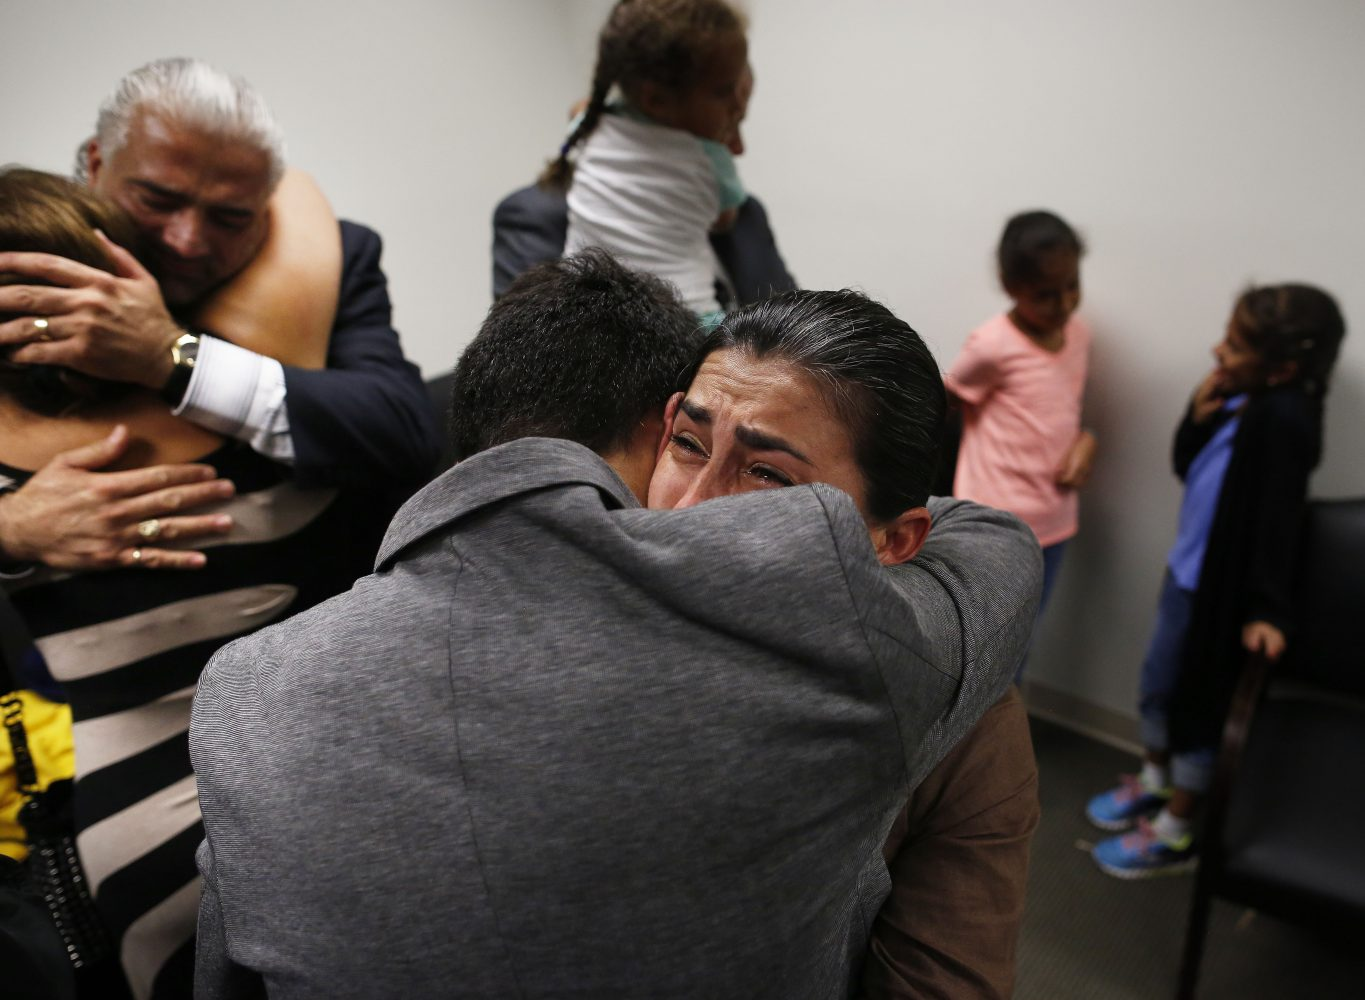 Claudia Aguilar, the mother of slain University of Florida student Christian Aguilar, hugs her son Alex in the family's private room at the Alachua County Criminal Justice Center following the guilty verdict of Pedro Bravo Friday, August 15, 2014.  Bravo was found guilty of first degree murder. (Doug Finger/The Gainesville Sun/Pool)